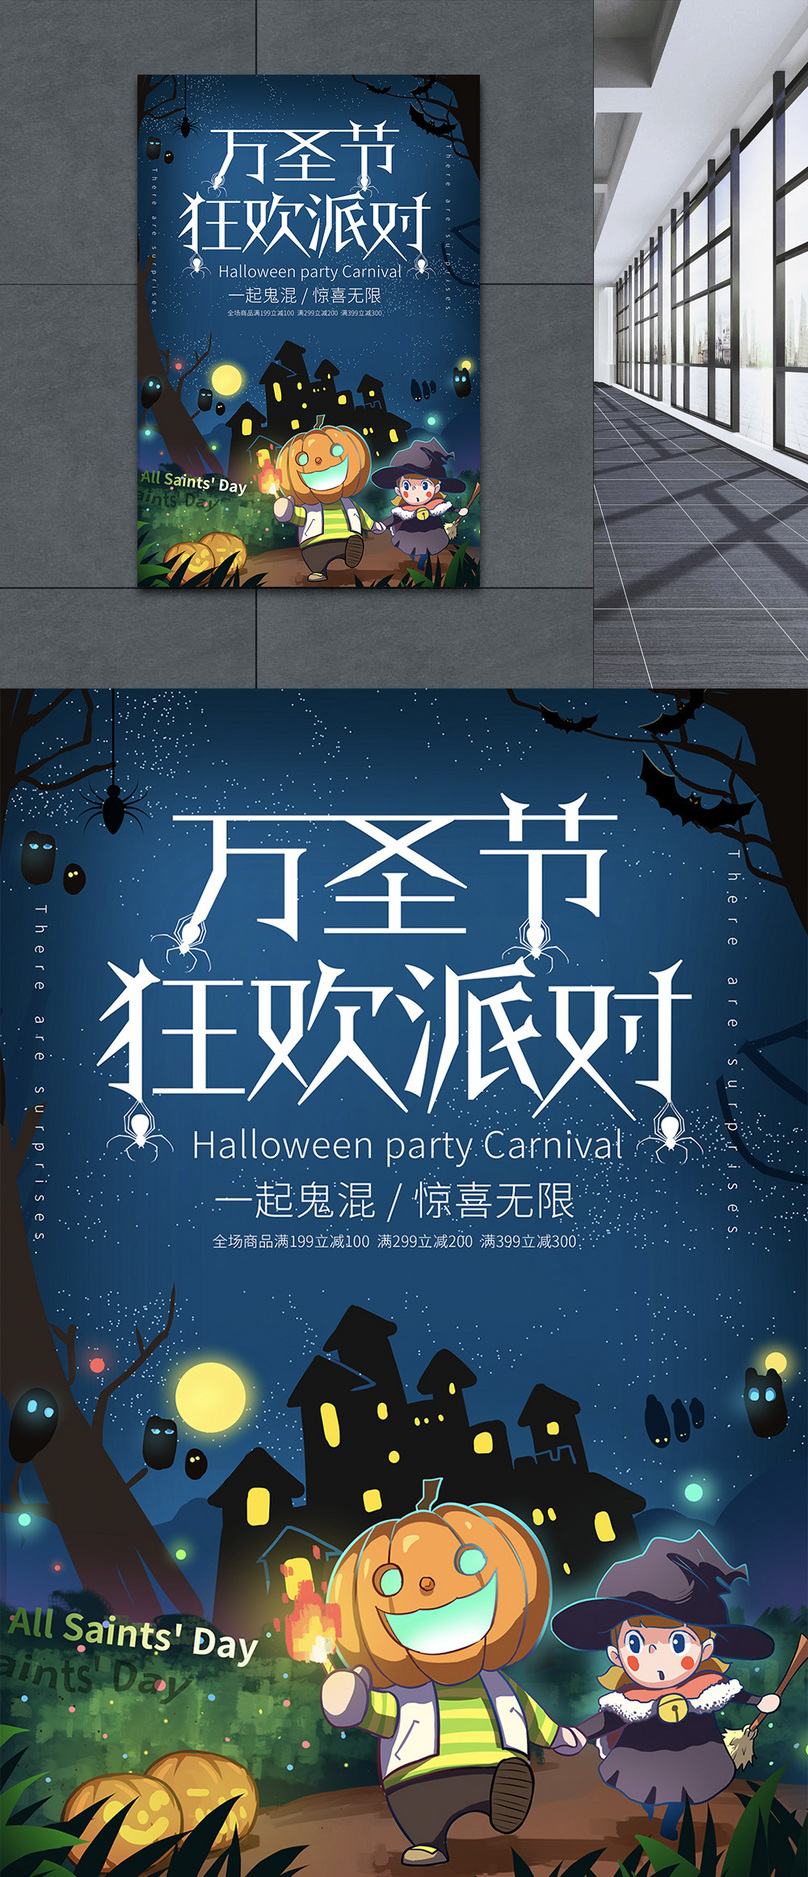 halloween carnival party posters template image picture free